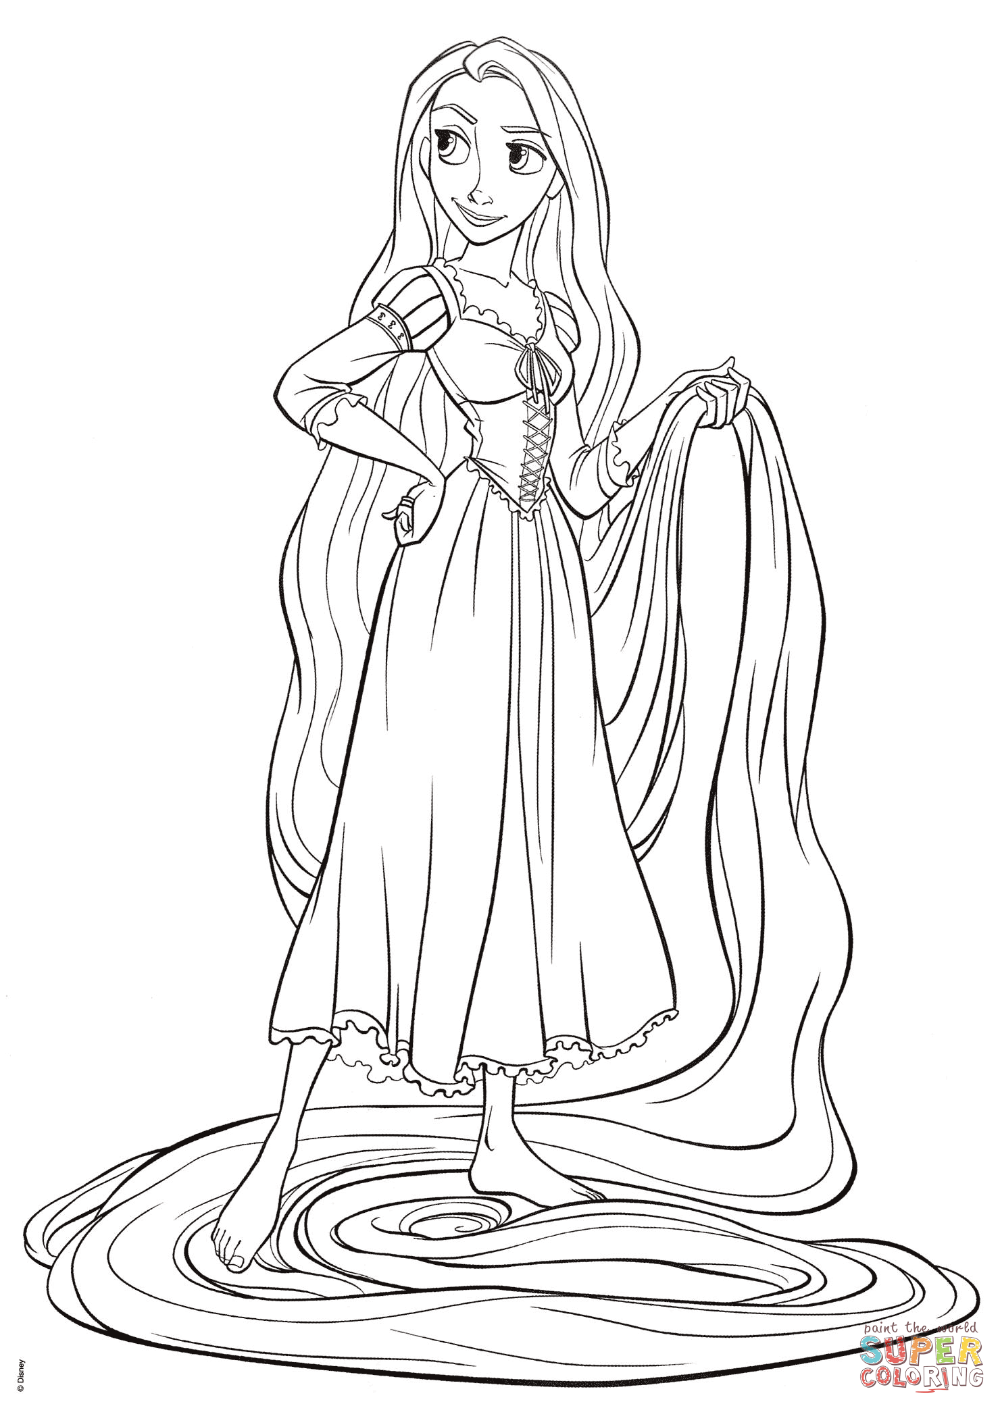 Rapunzel From Tangled Super Coloring Tangled Coloring Pages Rapunzel Coloring Pages Rapunzel Drawing